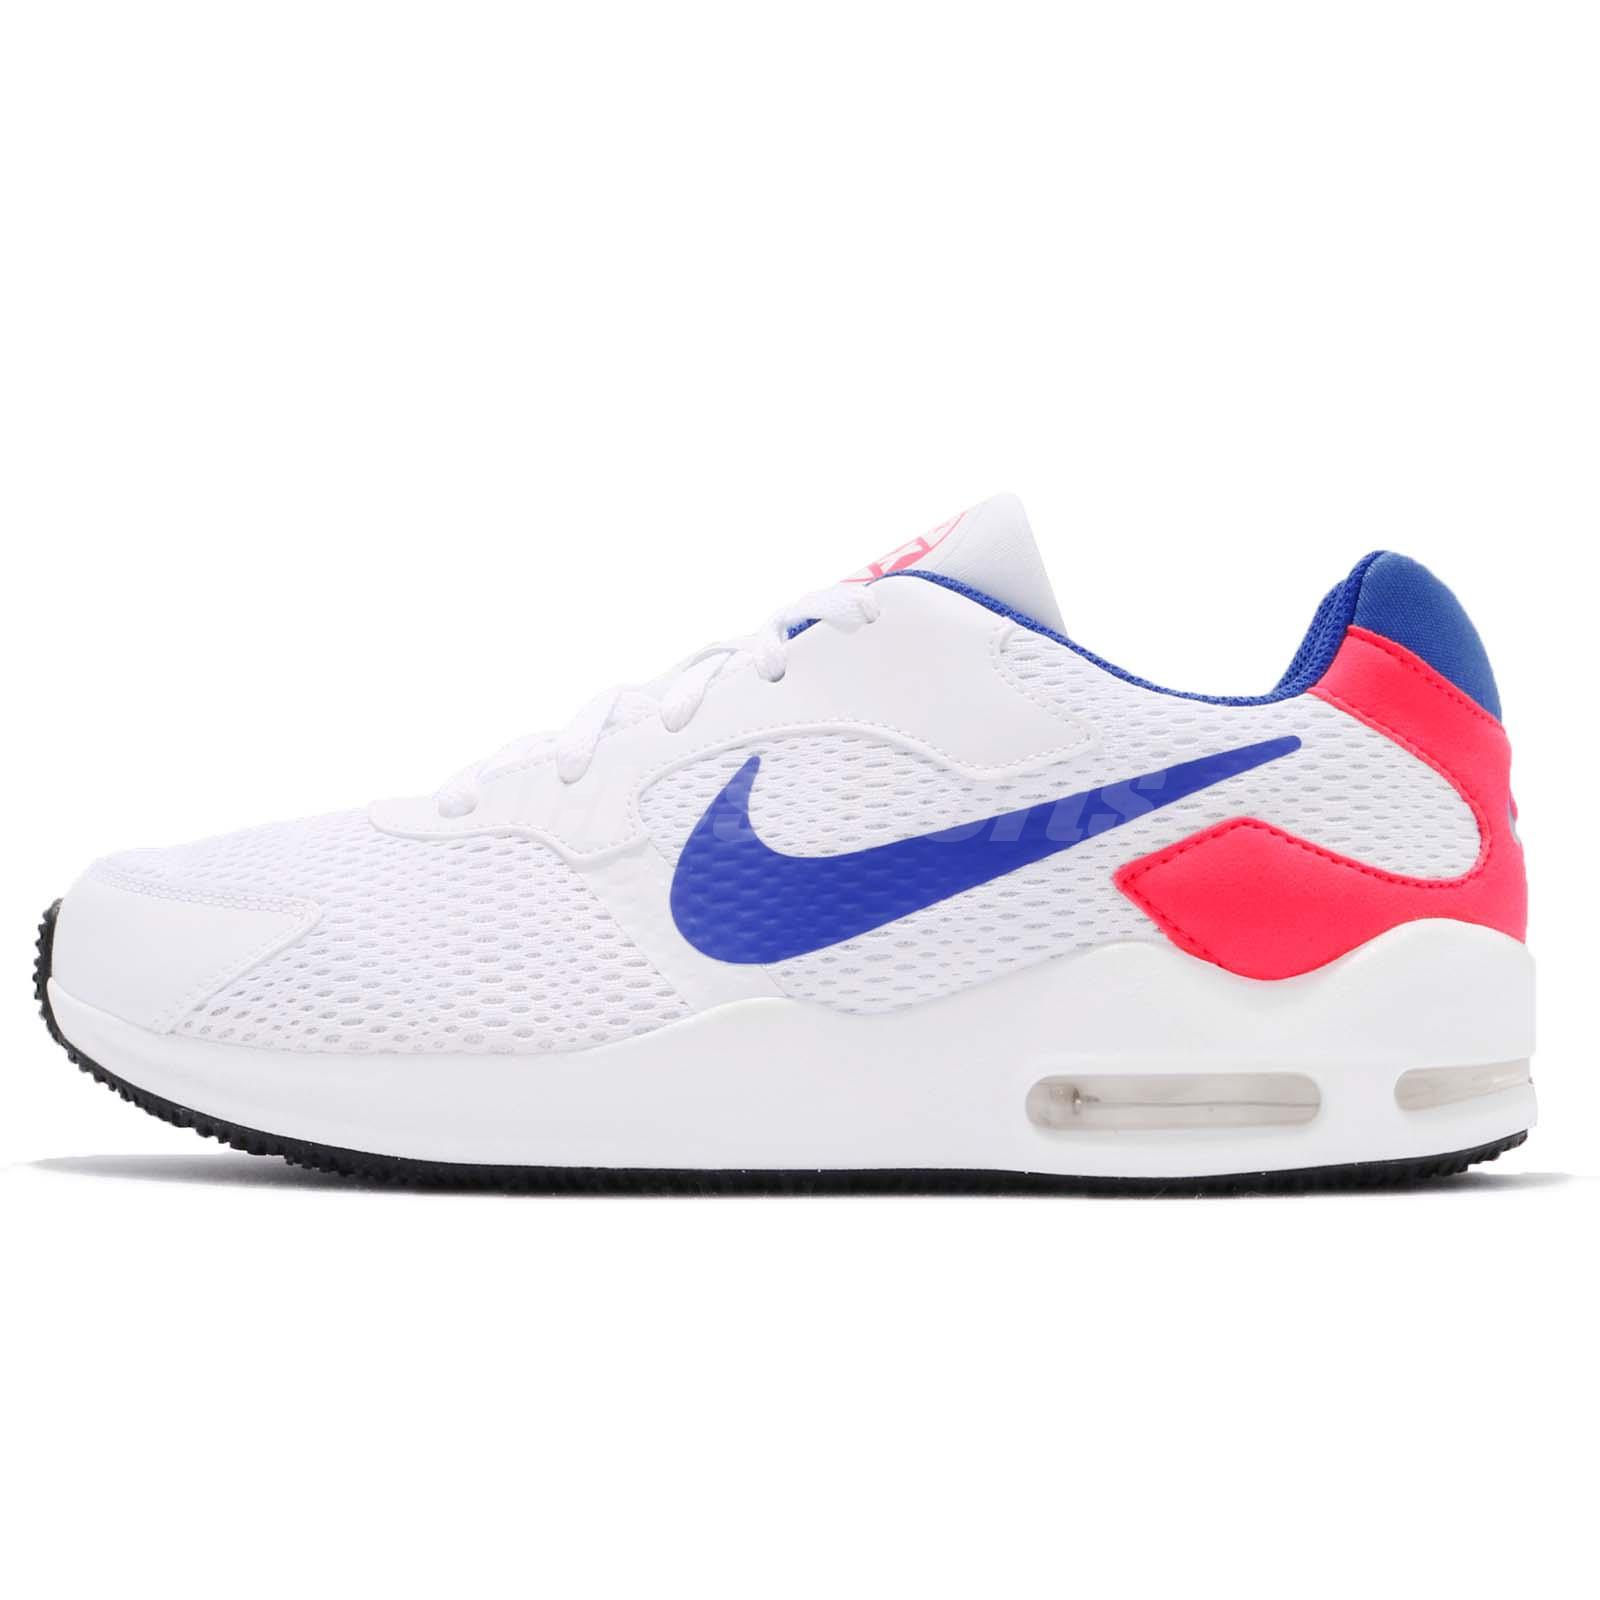 5ad0284ee9 ... get nike air max guile white ultramarine solar red men running shoes  916768 101 30342 72e38